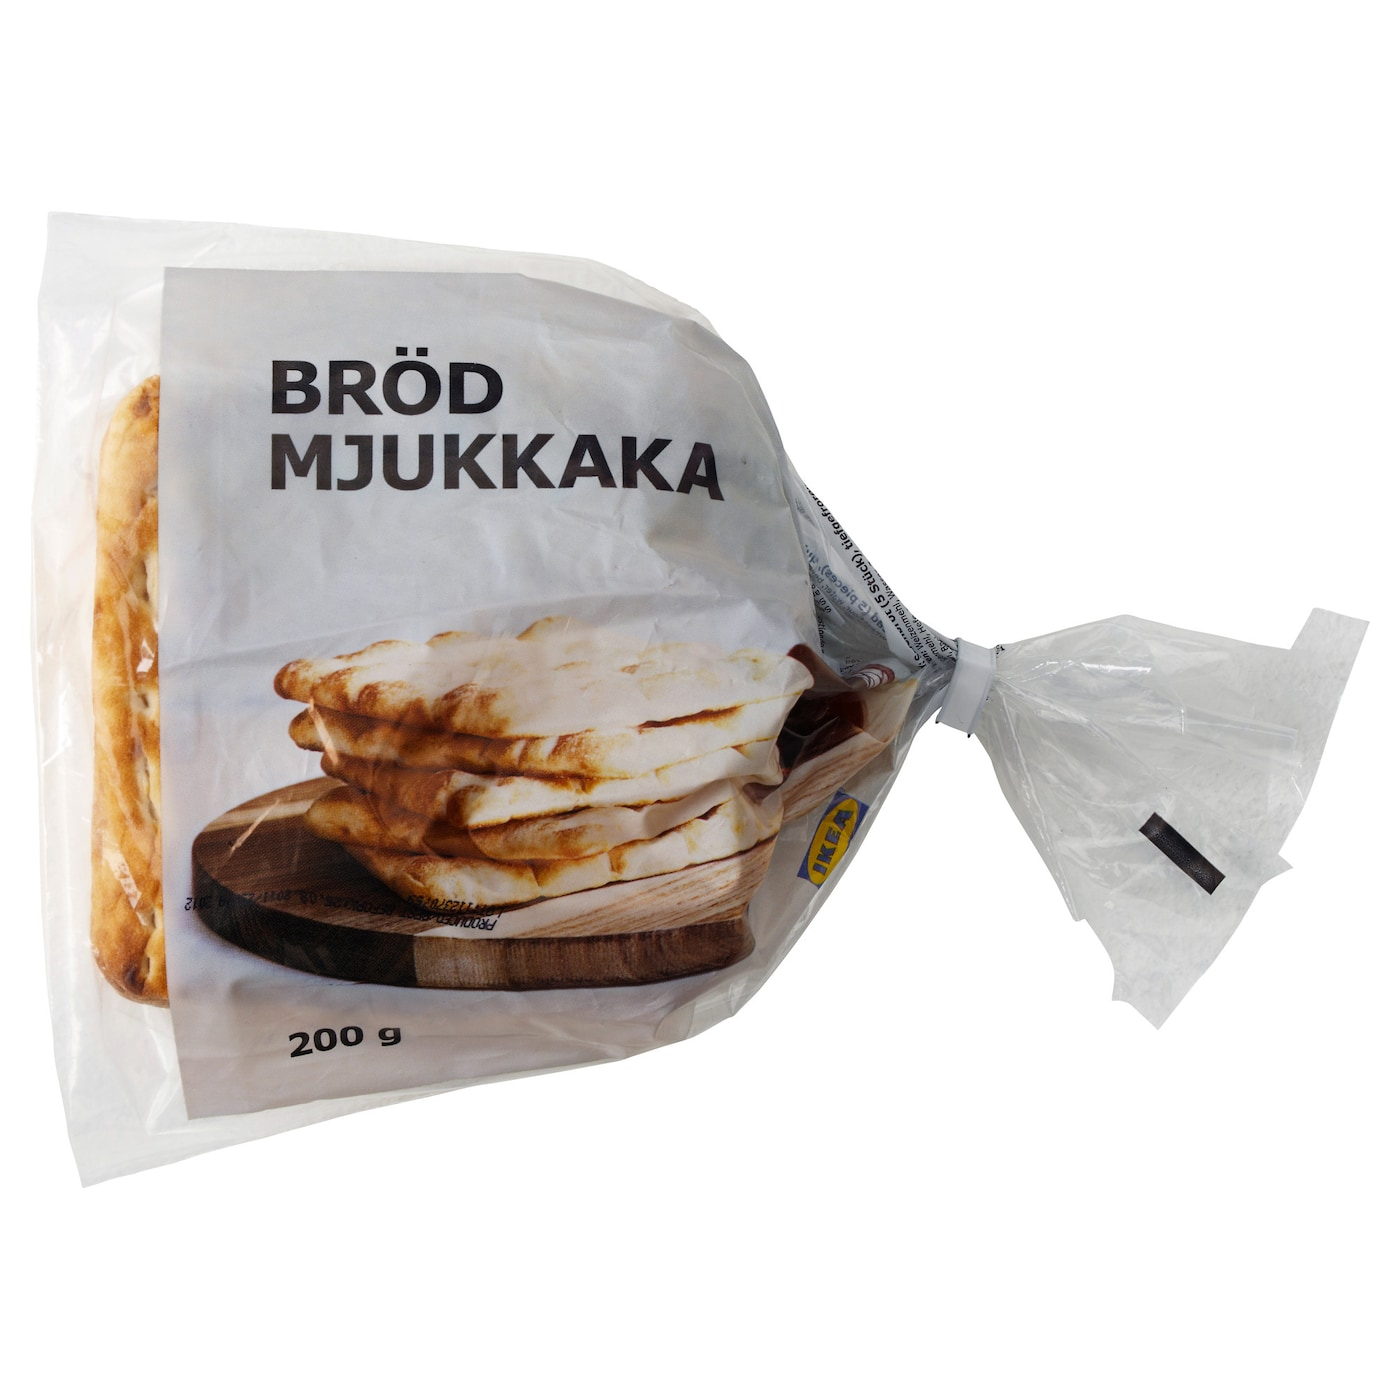 IKEA BRÖD MJUKKAKA soft wheat bread, frozen